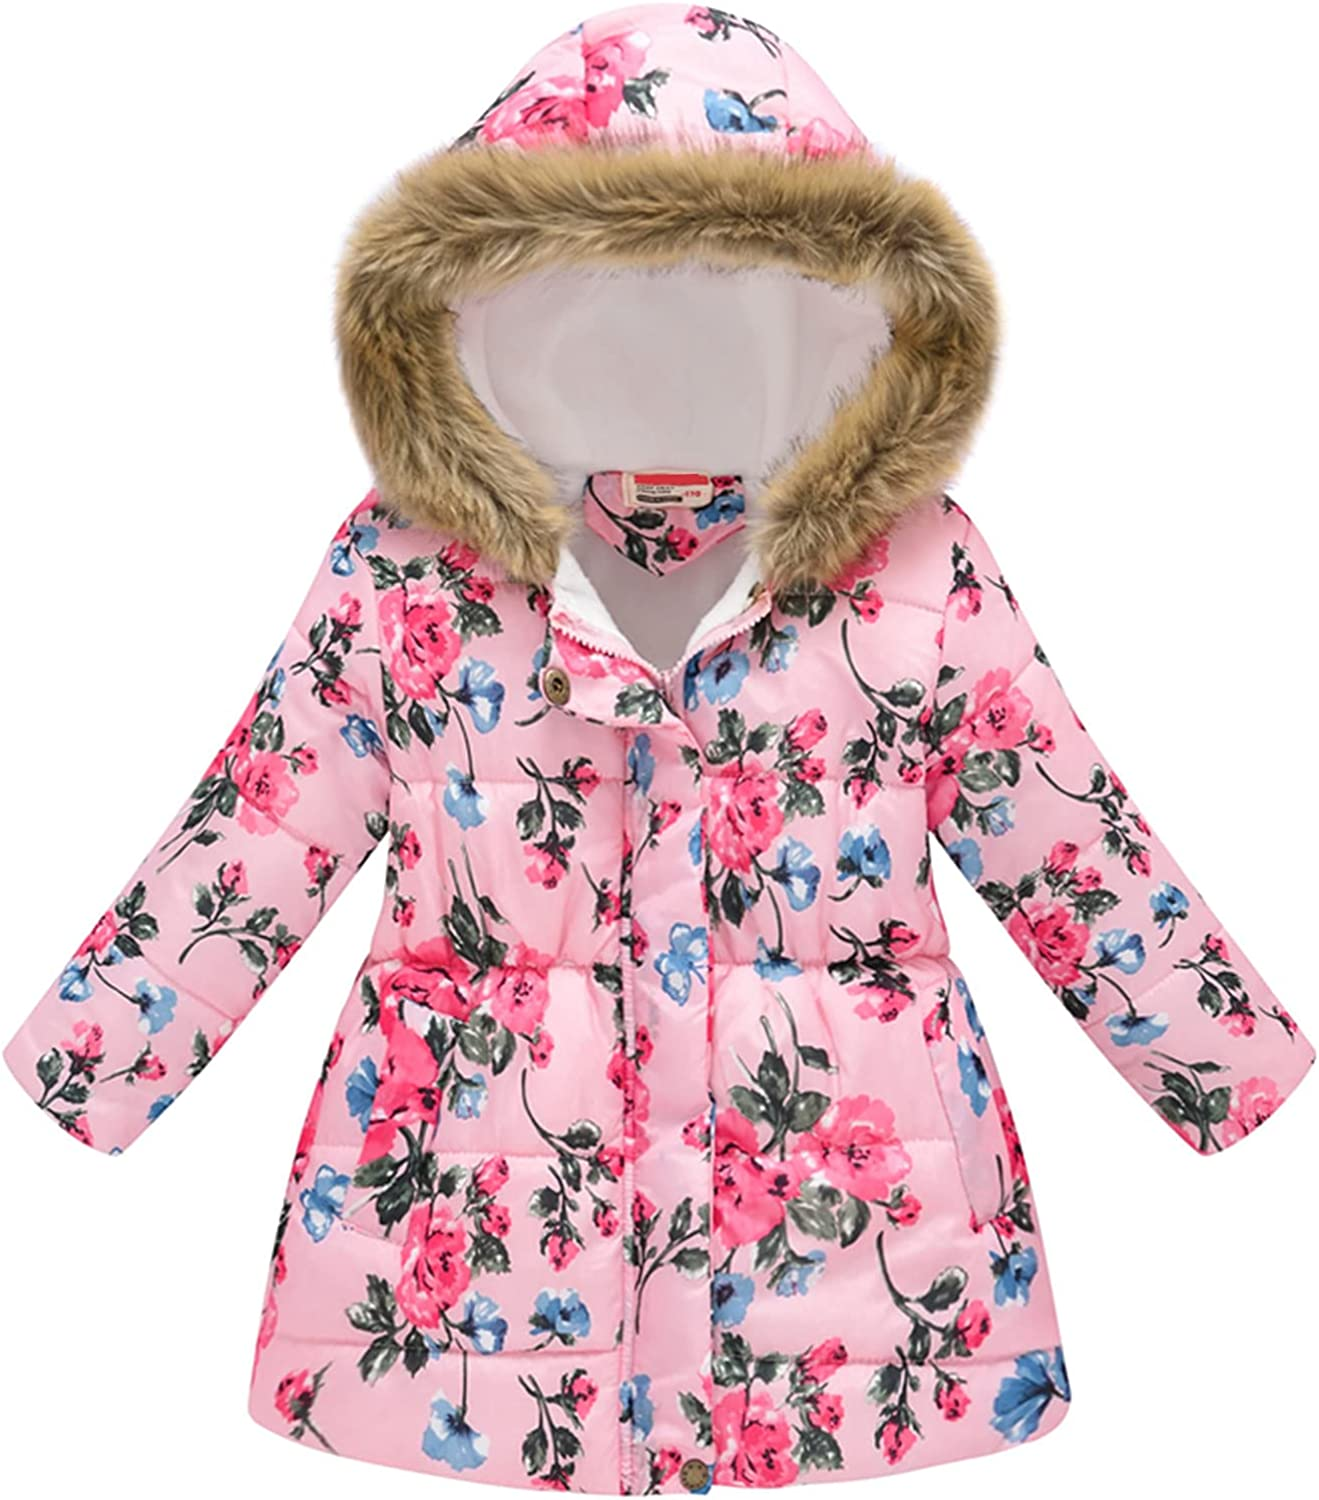 Baby Girl's Winter Down Year-end gift Coat Parka SALENEW very popular! Hooded Printed Outwear Flower